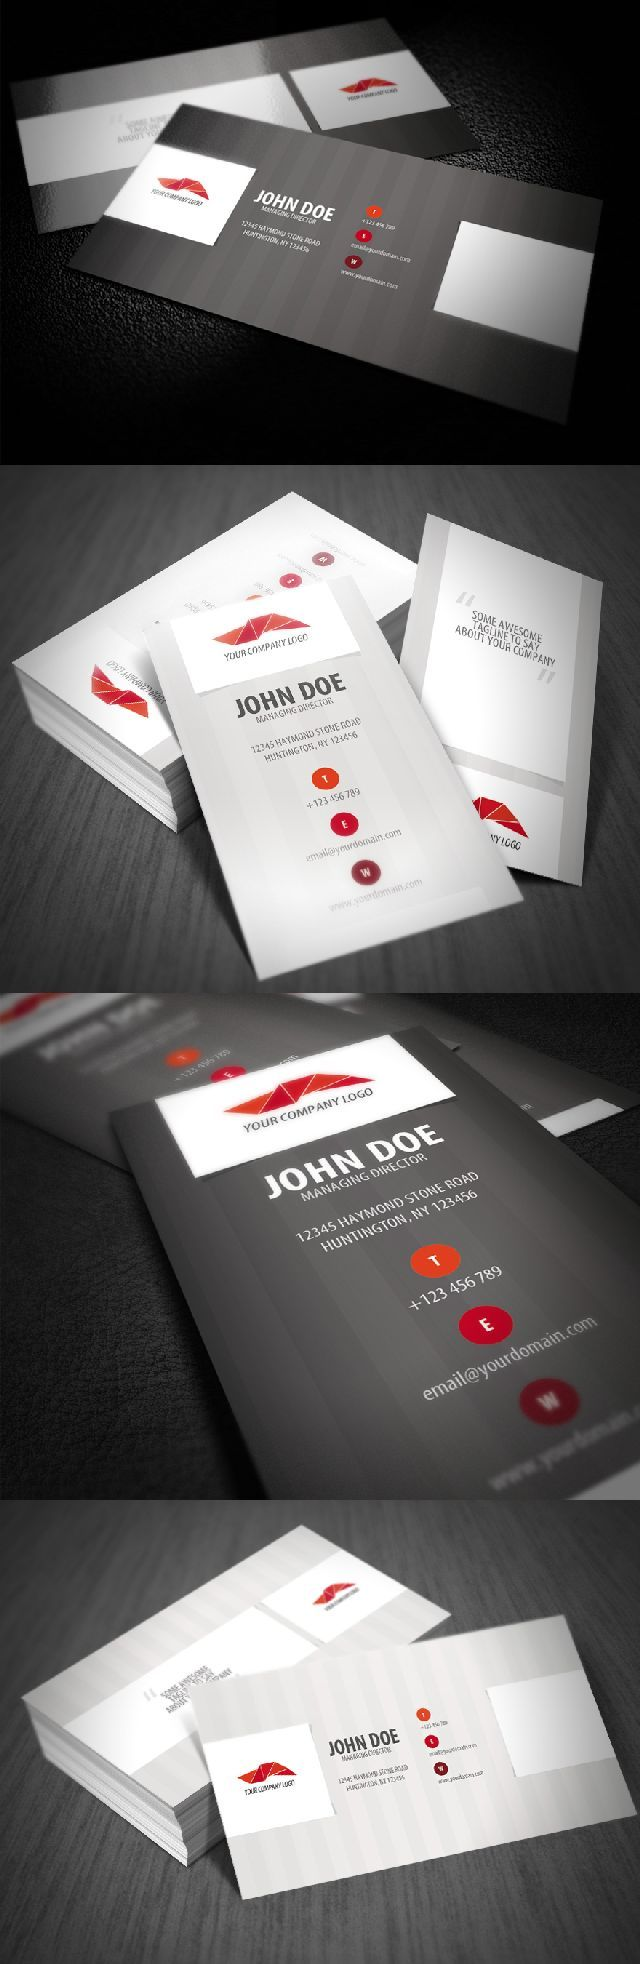 81 best business card ideas images on pinterest corporate